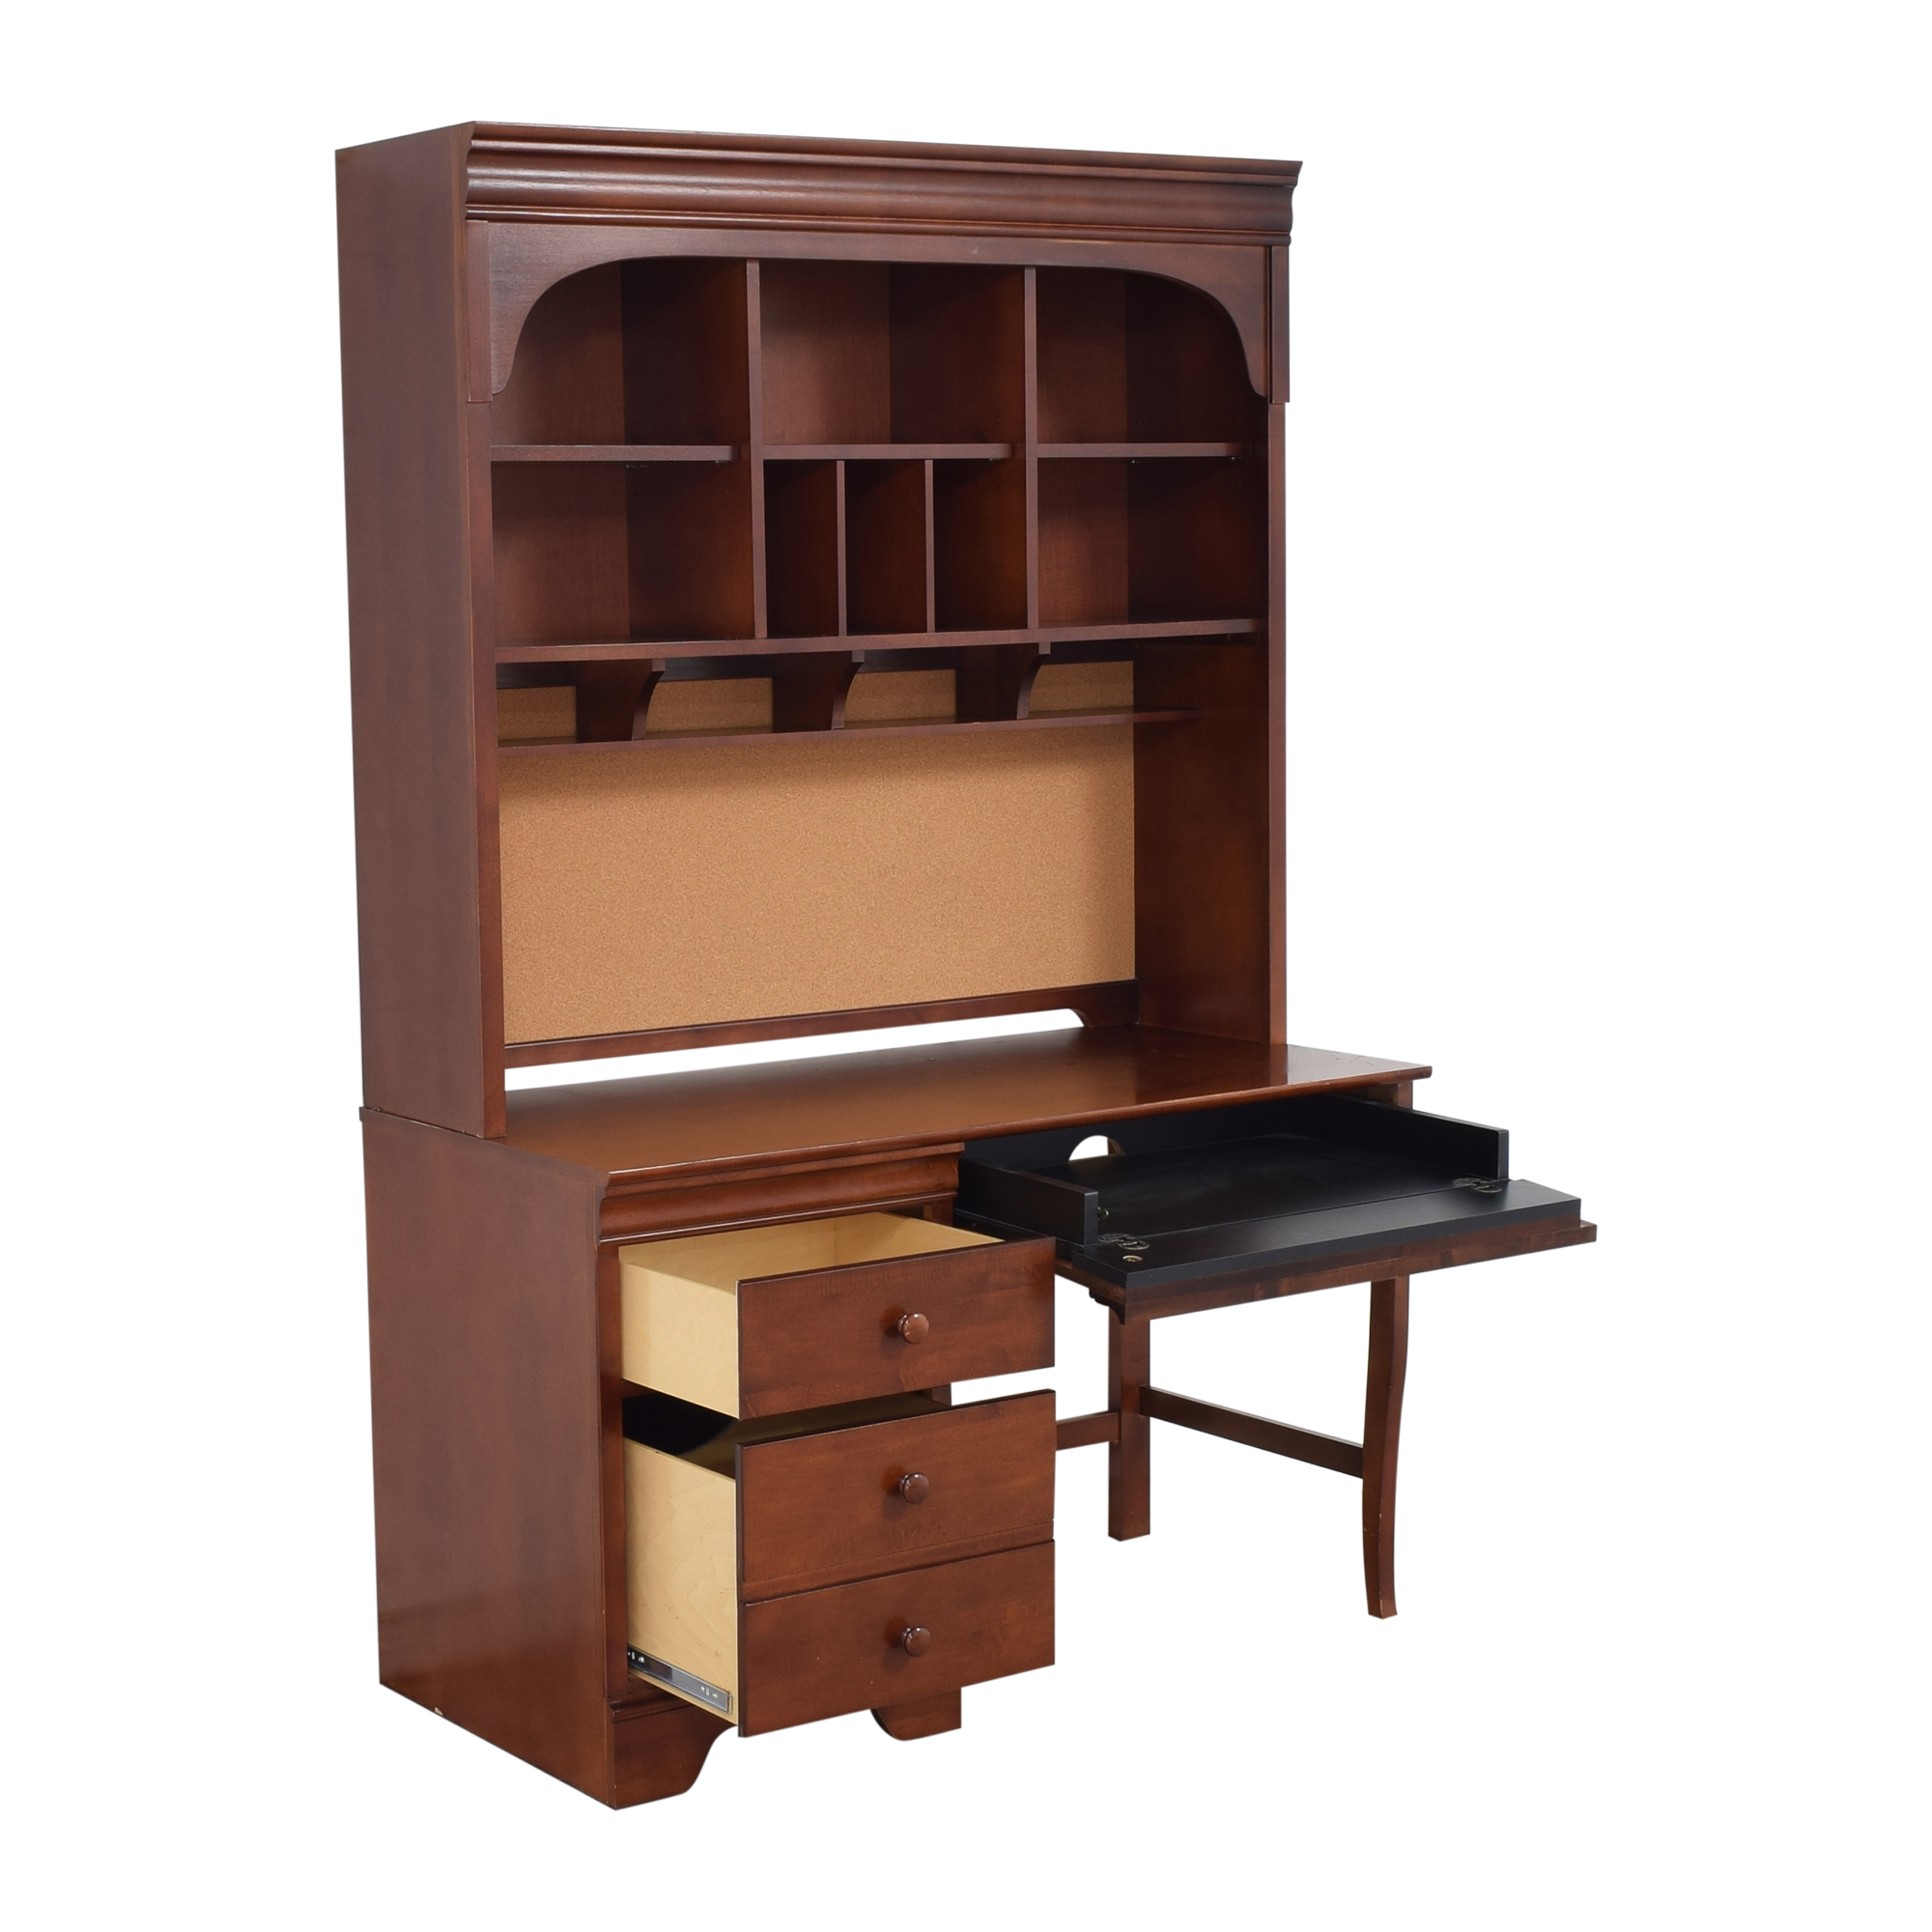 Stanley Furniture Young America Desk with Hutch / Tables